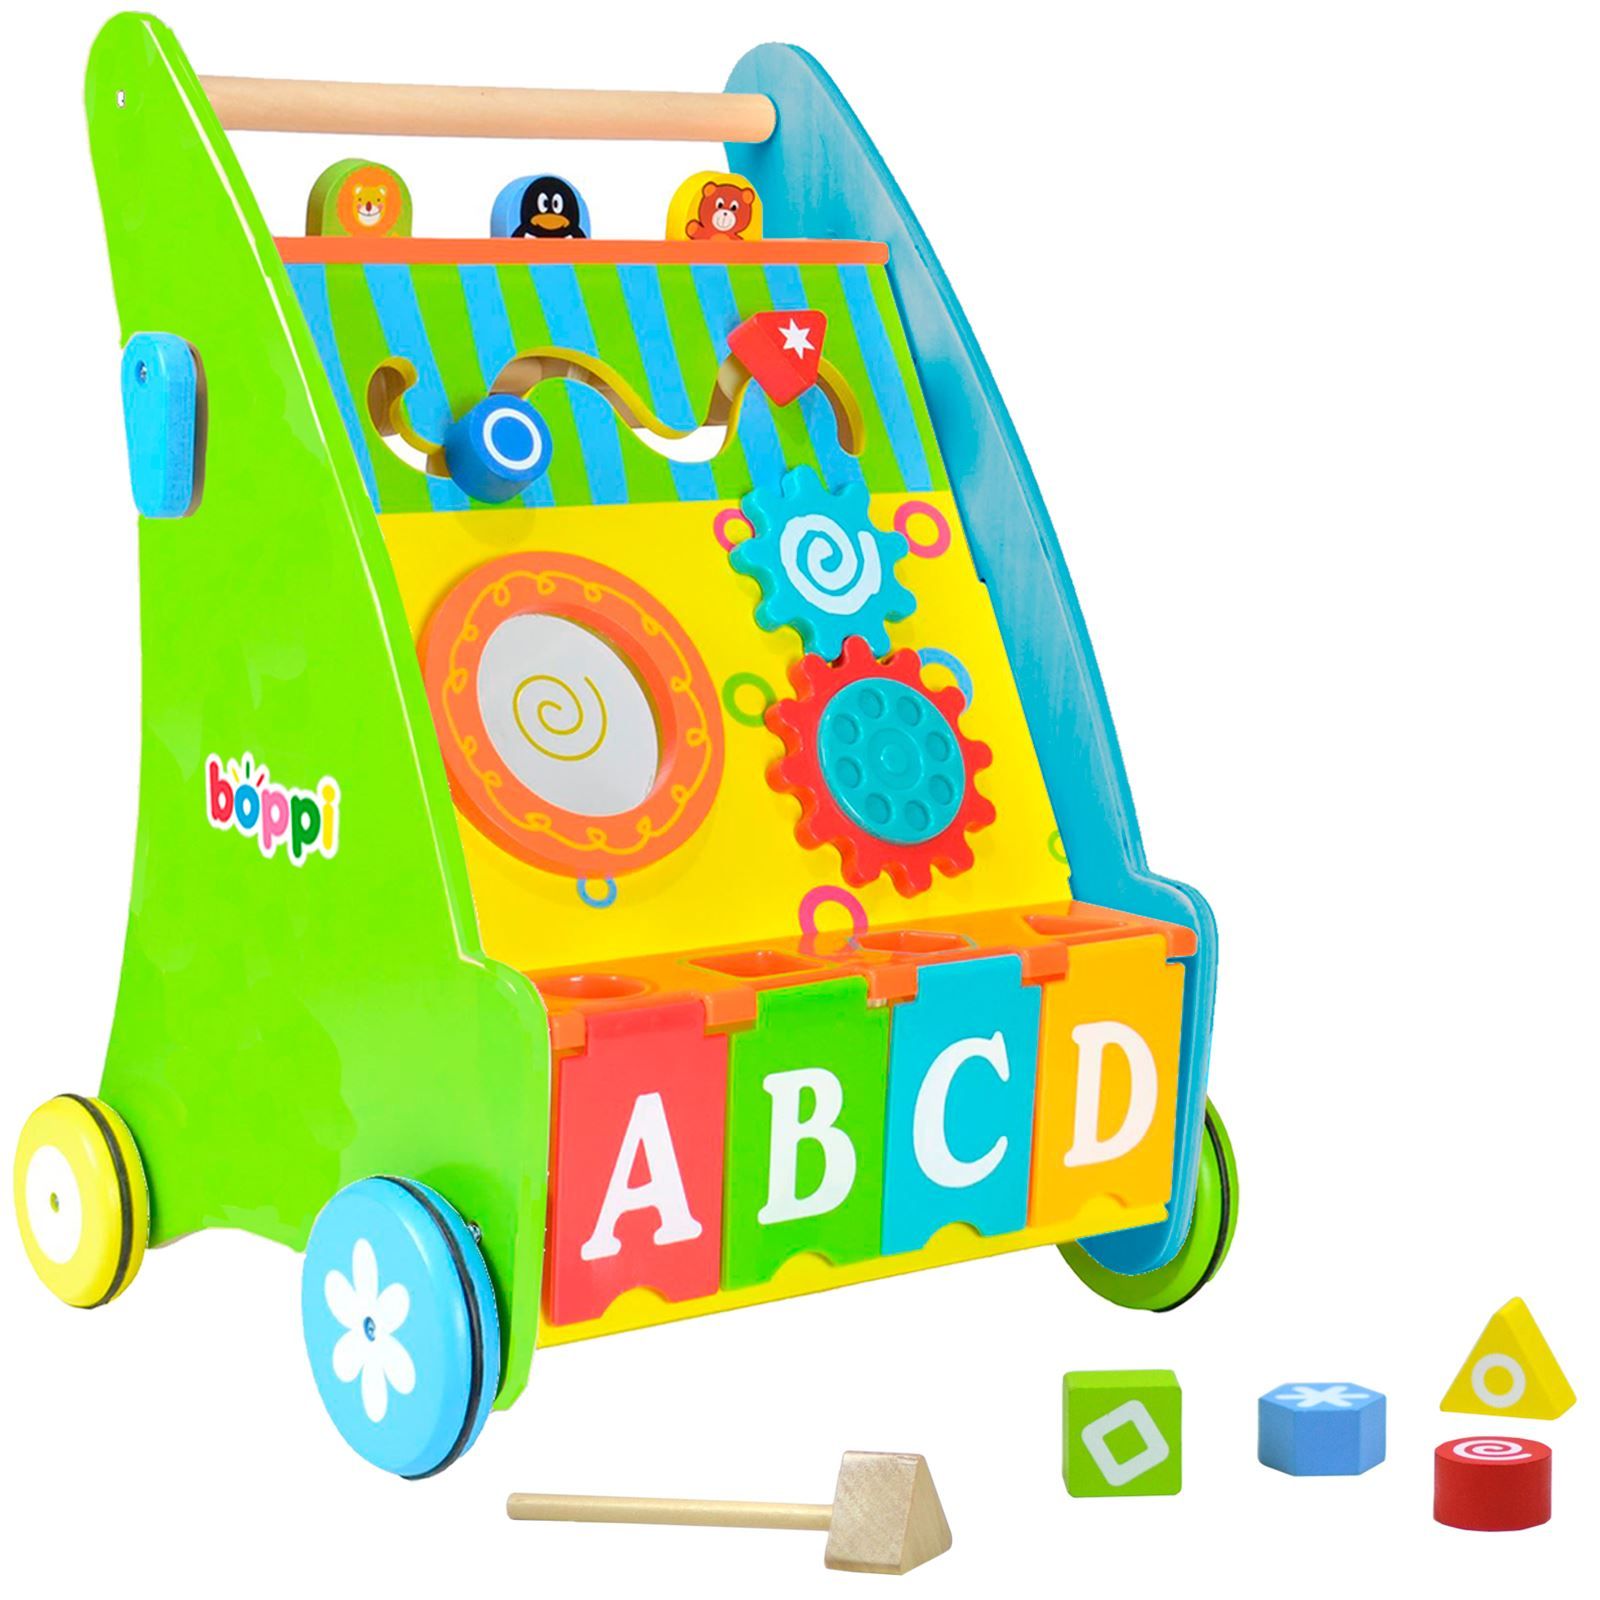 boppi Wooden Push Along Activity Walker for Babies & Toddlers